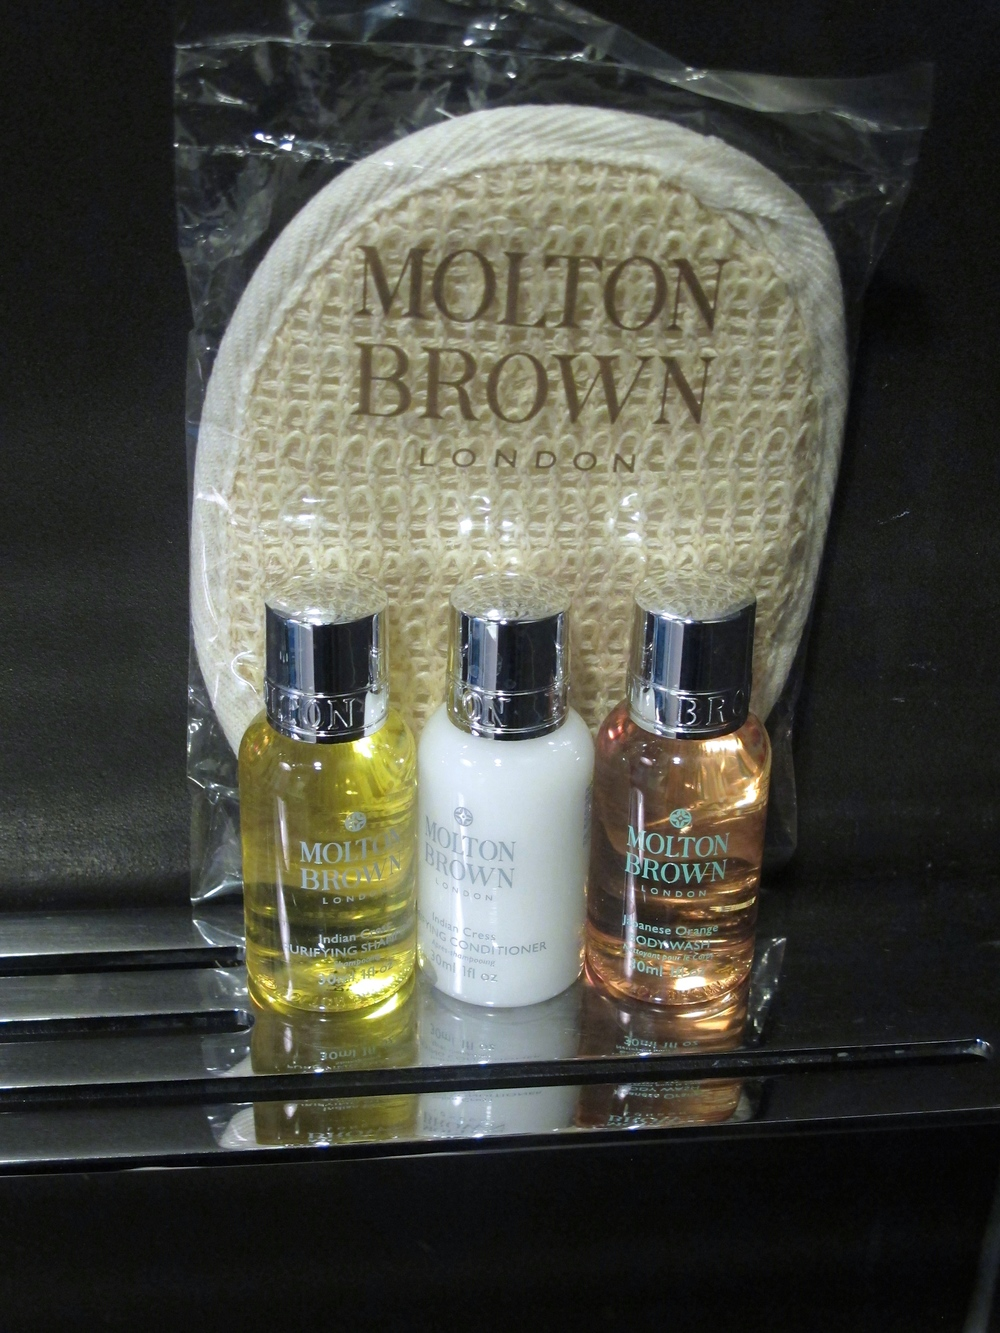 moltonbrowntoiletriesamesboston.jpg